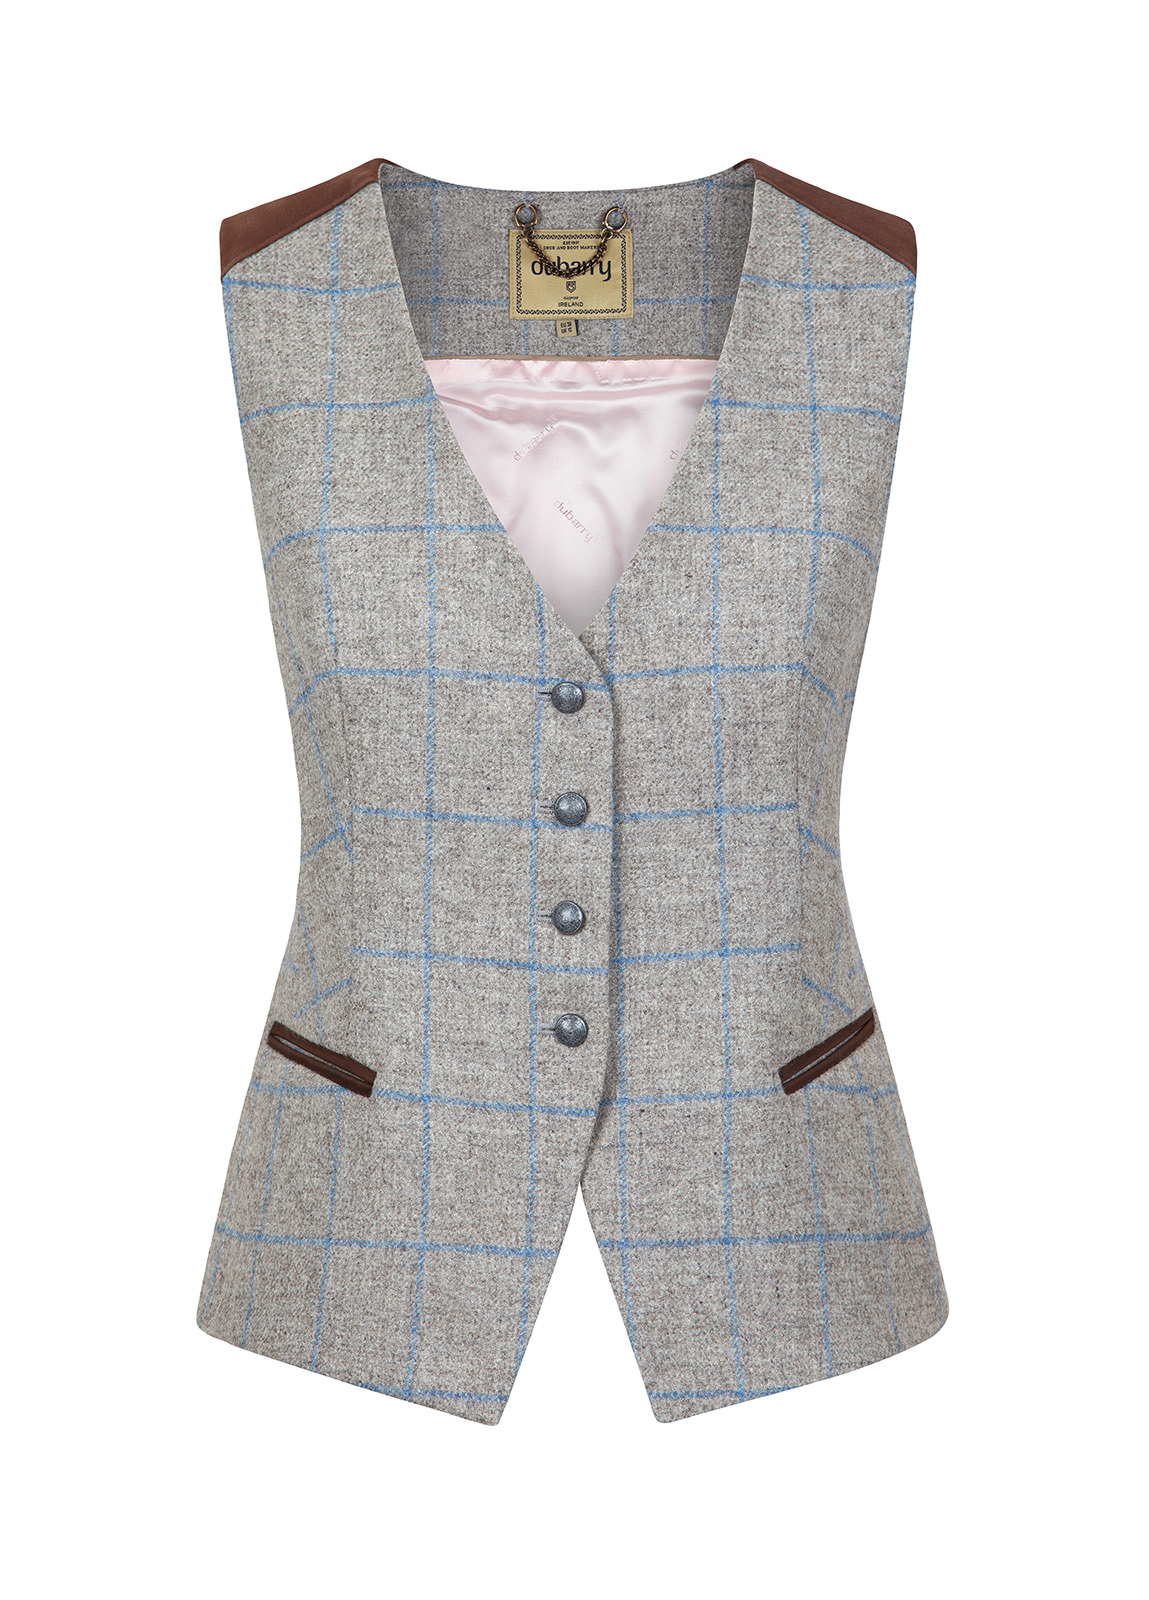 Dubarry_ Daisy Fitted Tweed Waistcoat - Shale_Image_2